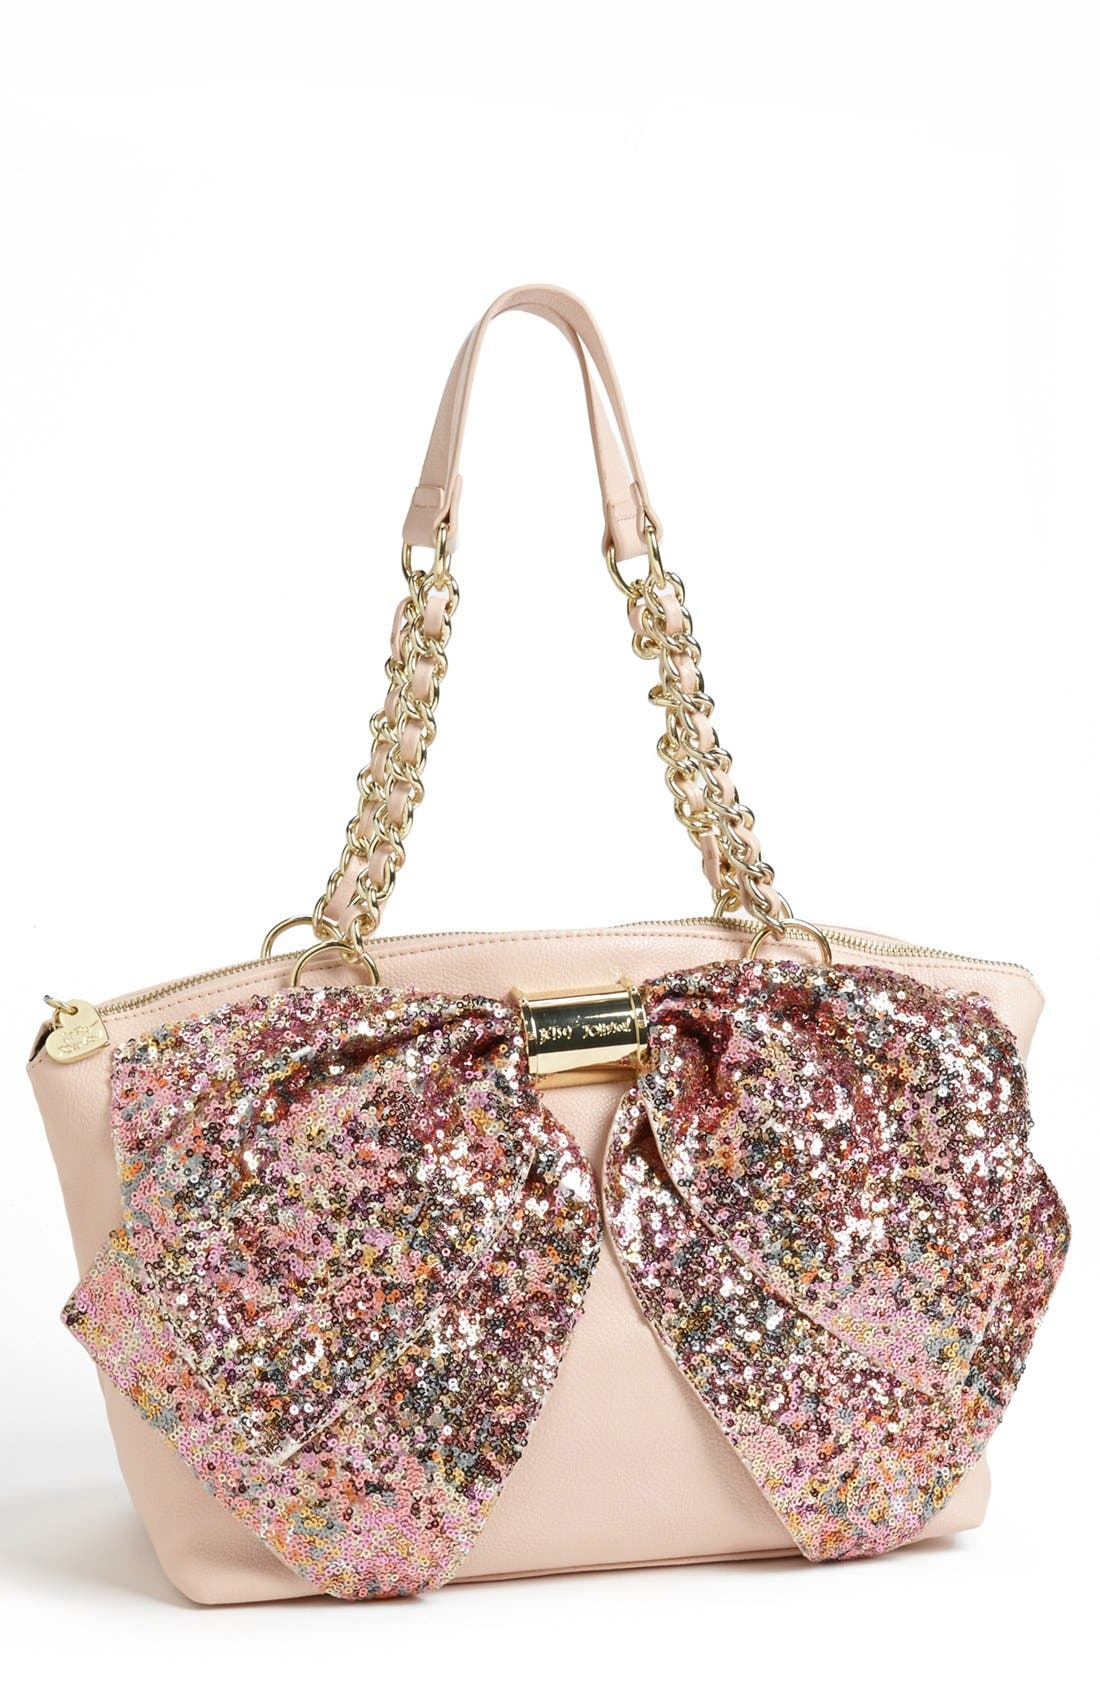 Alternate Image 1 Selected - Betsey Johnson 'Bow-Nanza' Satchel